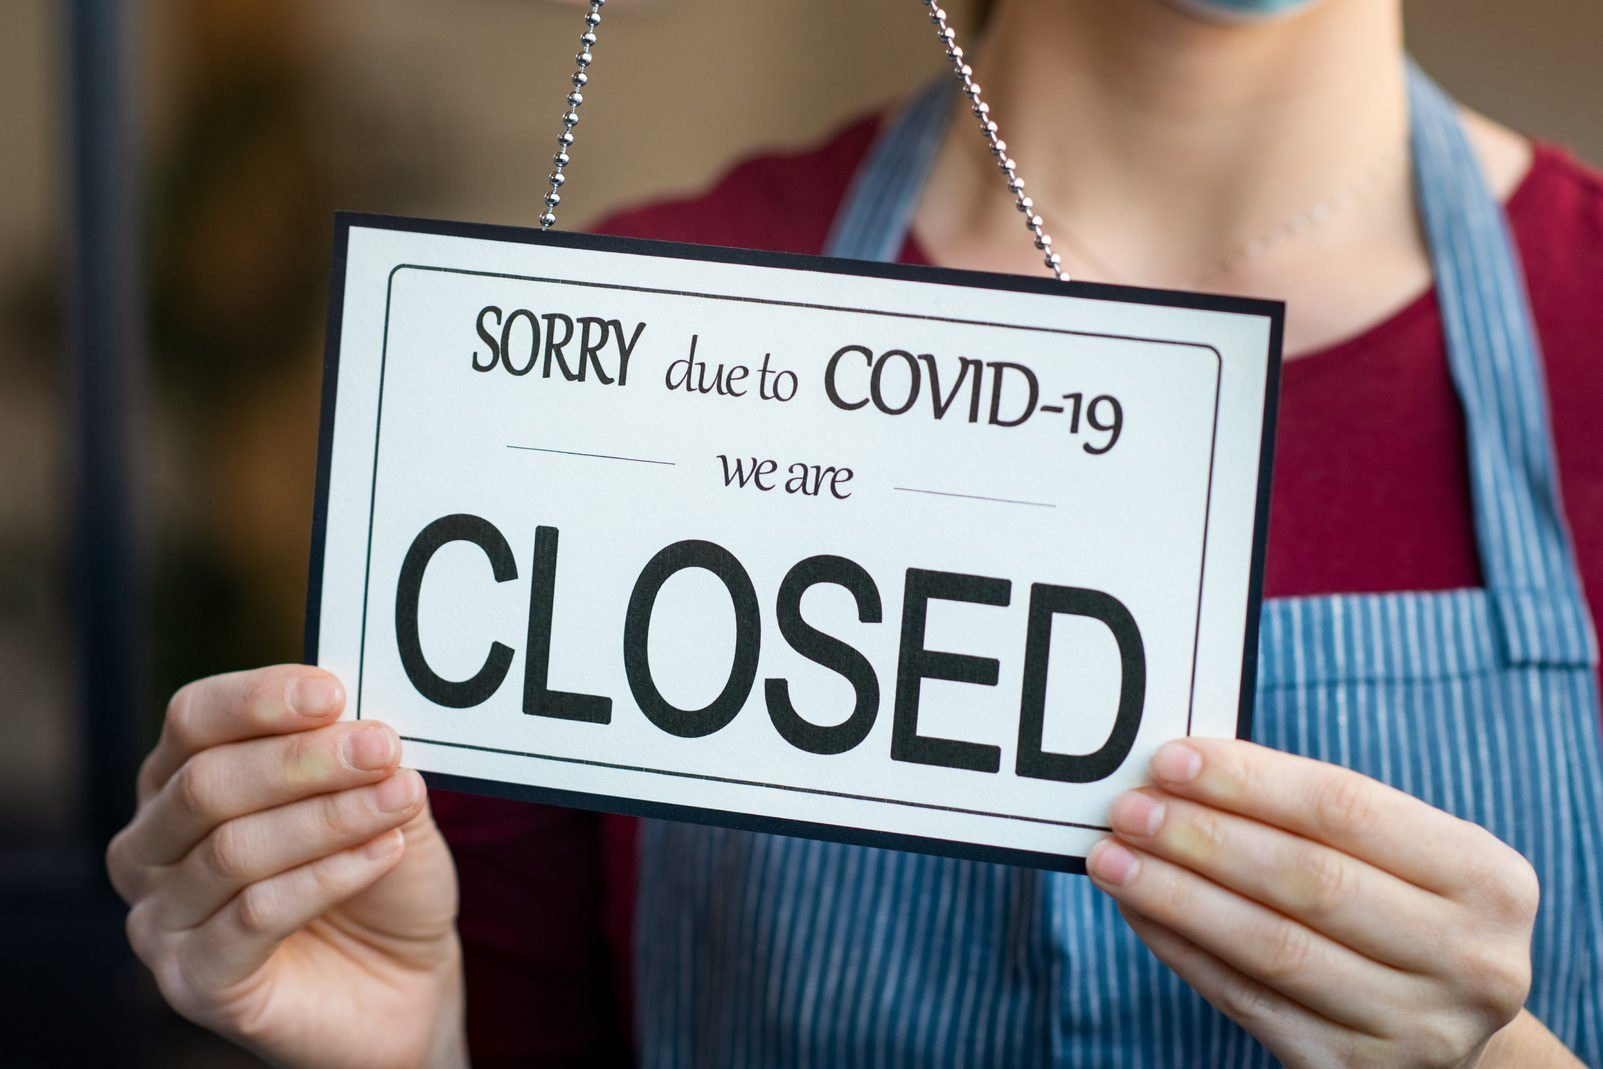 Small business closed for covid-19 lockdown